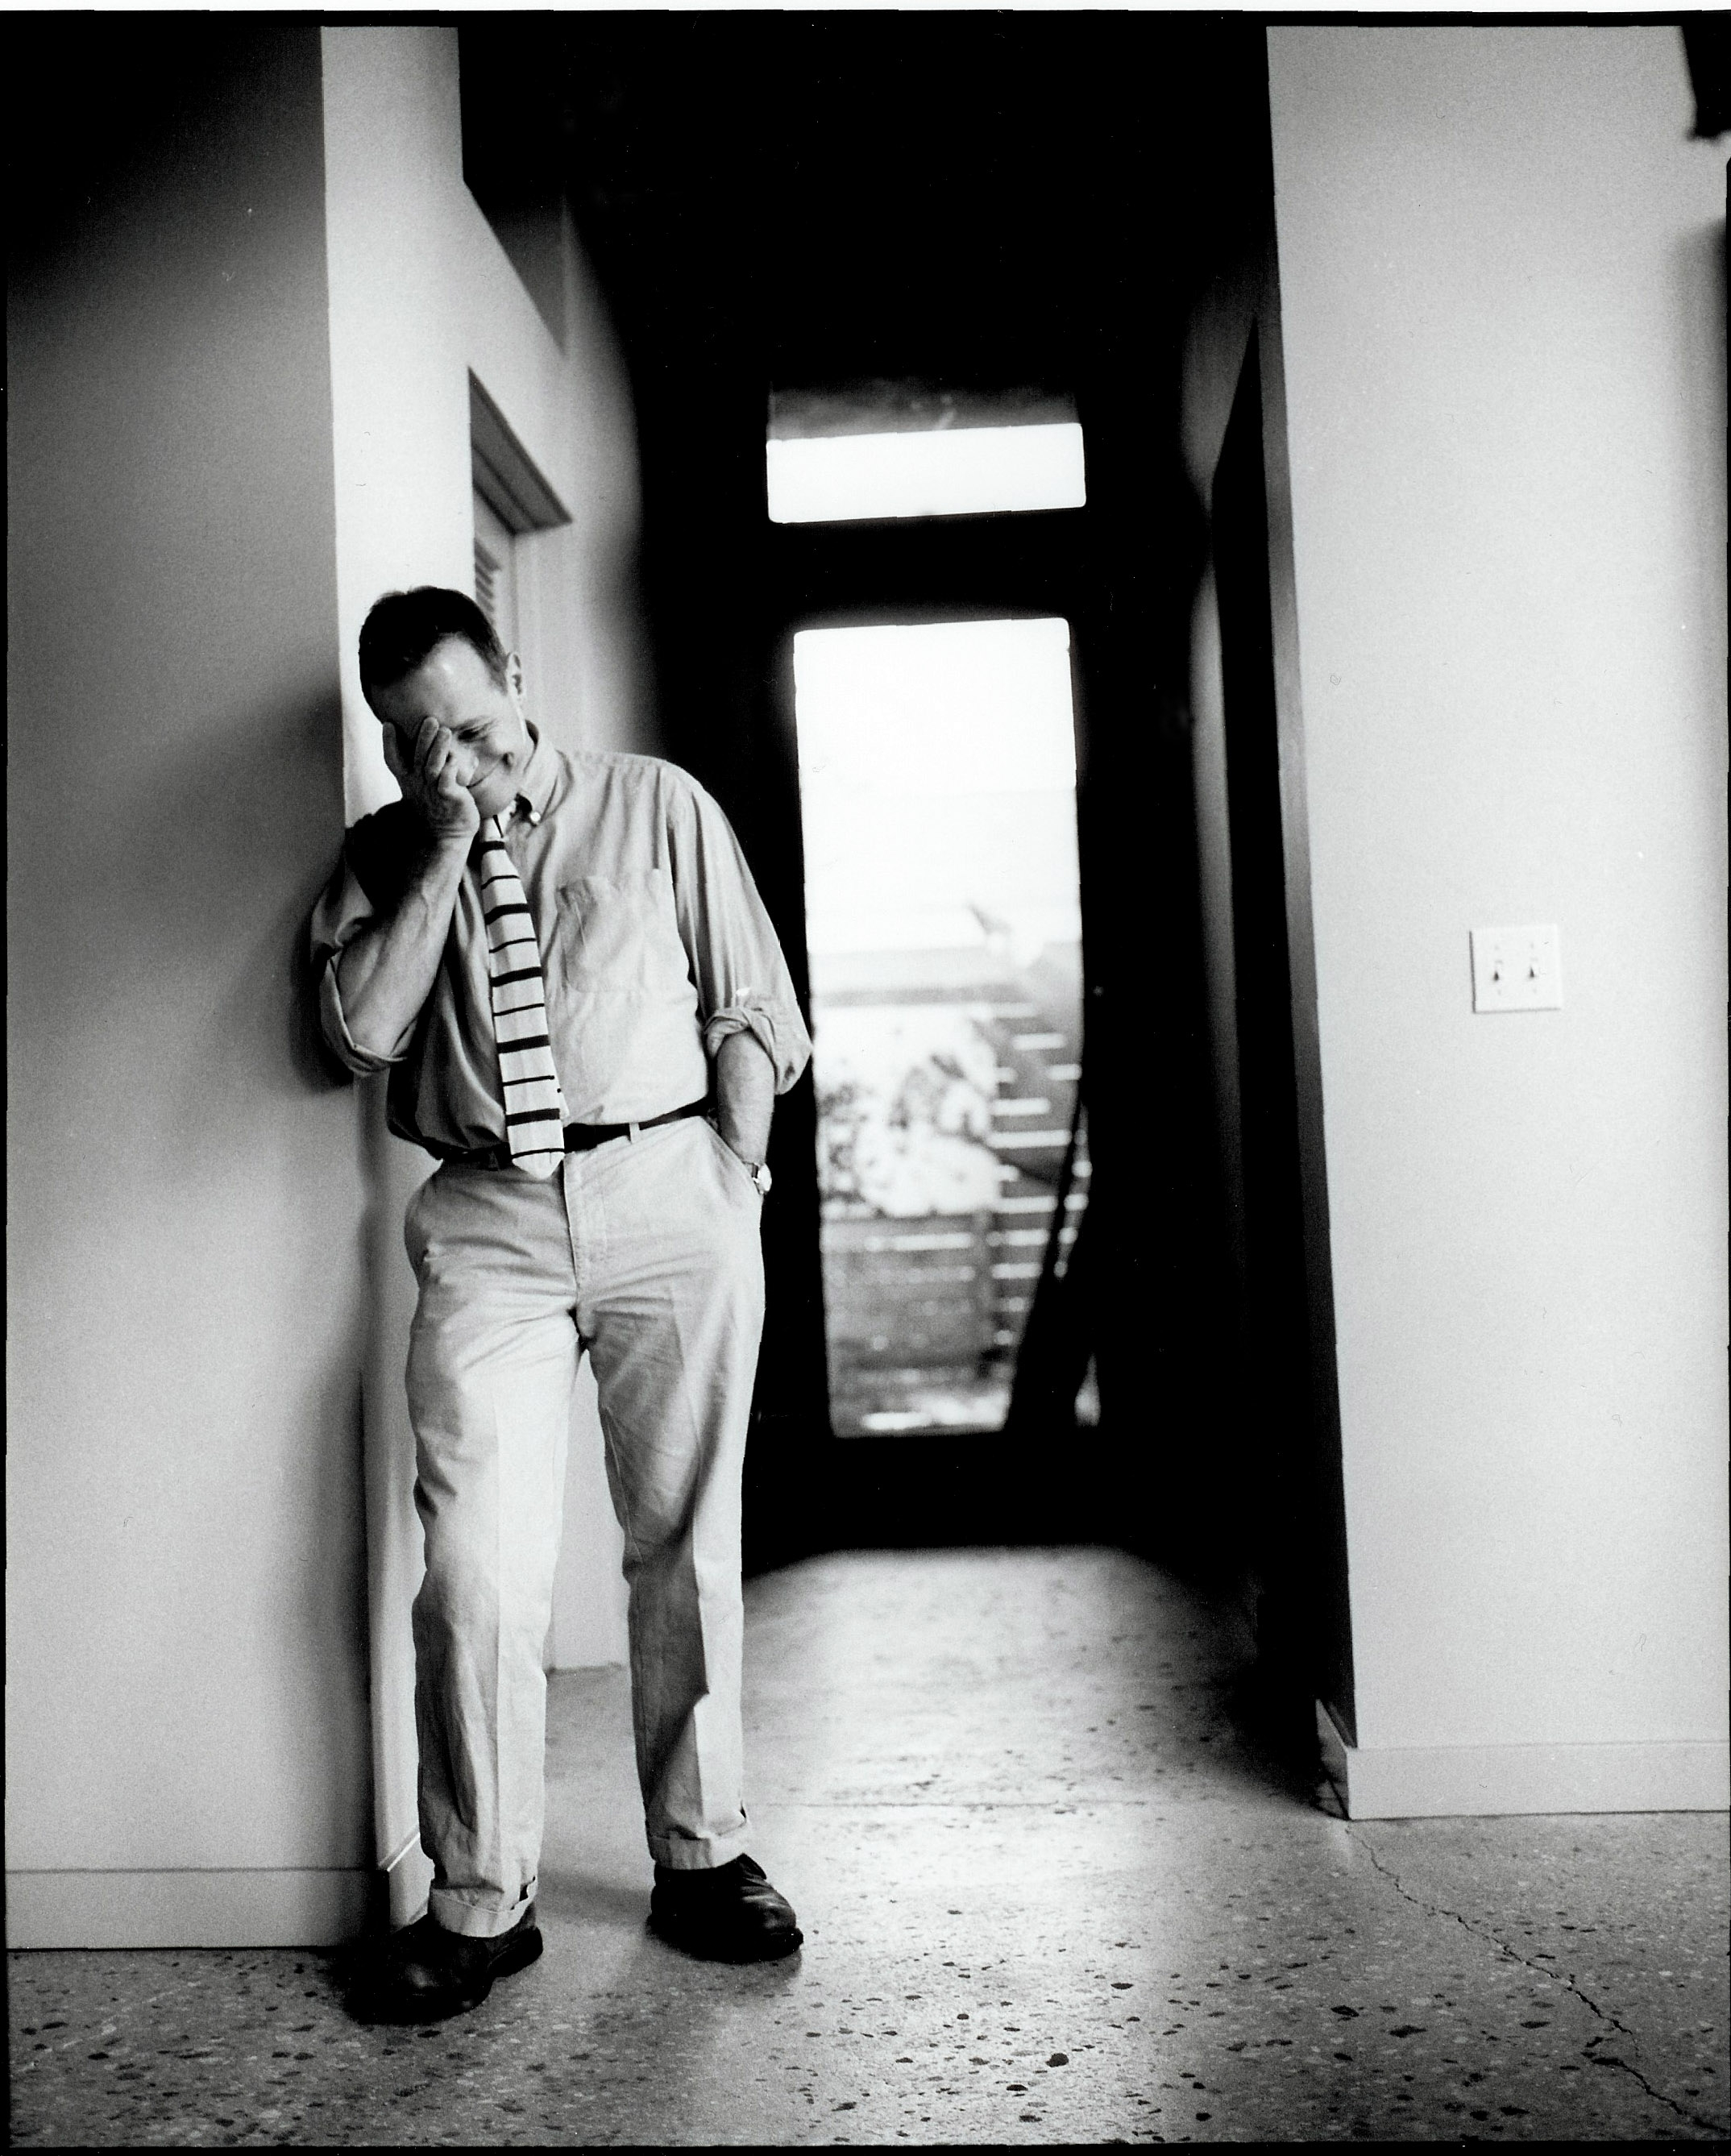 Check out my expanded horizons: An Evening with David Sedaris